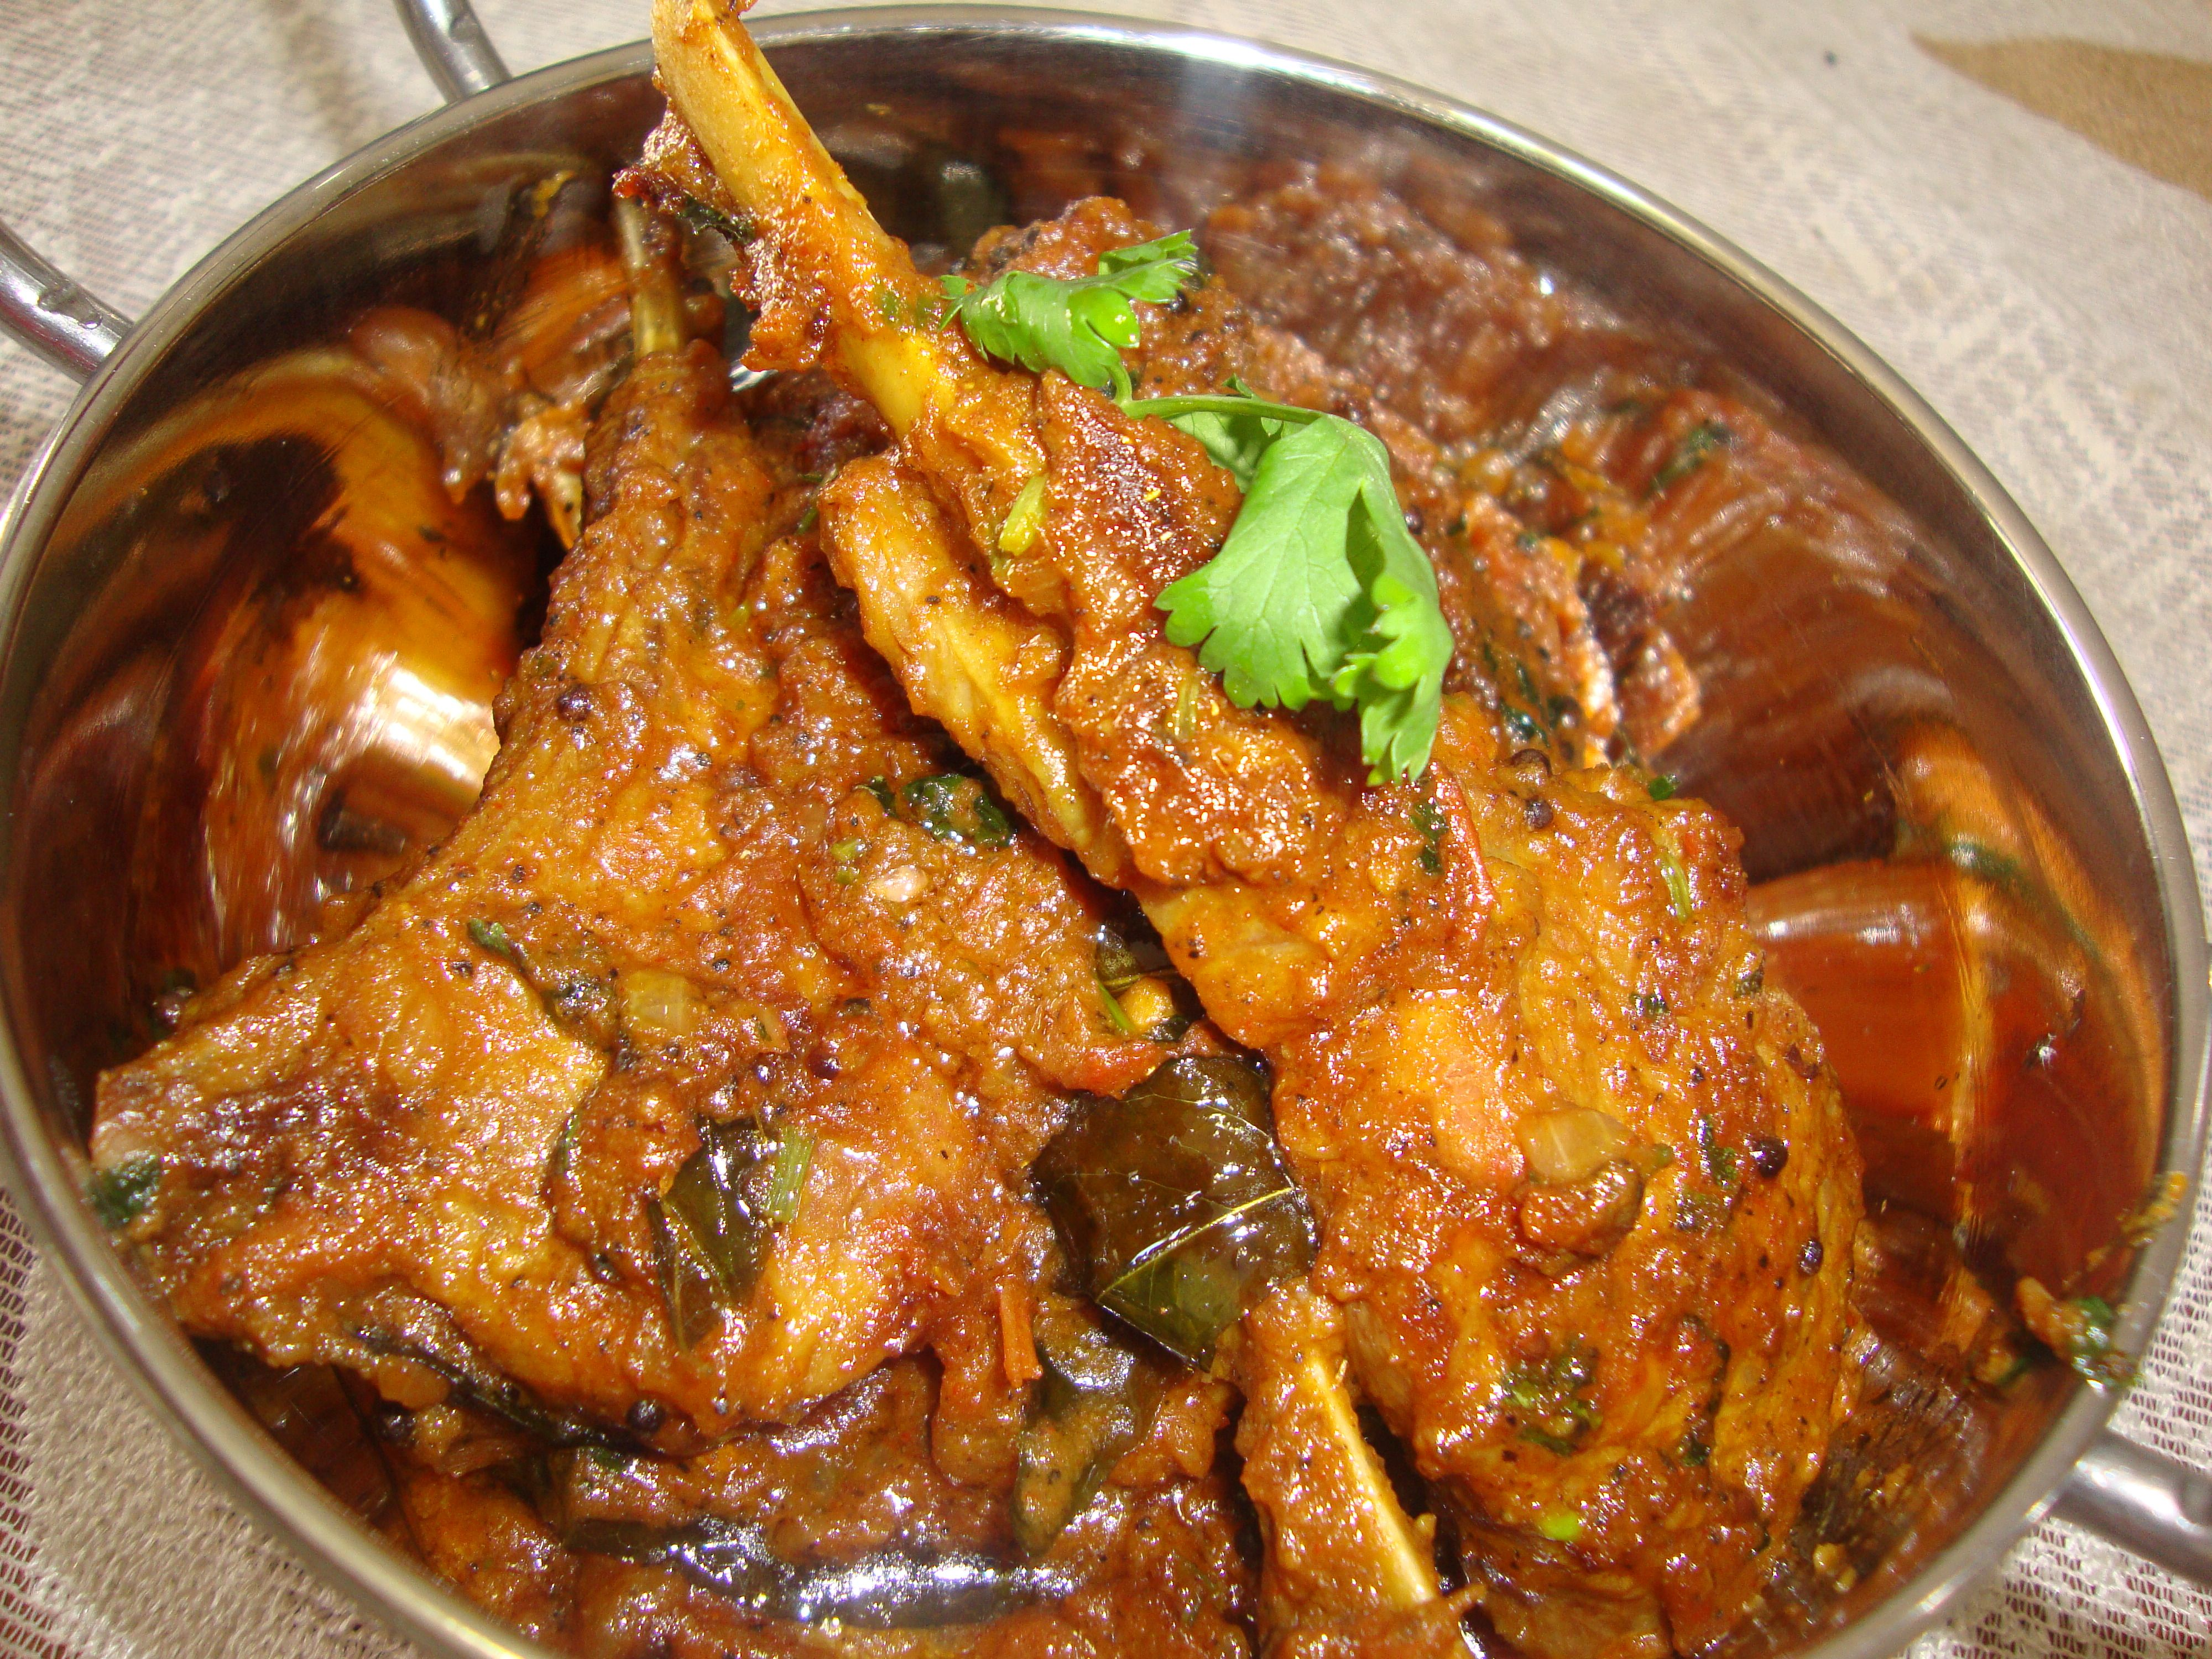 Mutton chops masala recipe south indian style goat masala mutton mutton chops masala recipe south indian style goat masala forumfinder Images